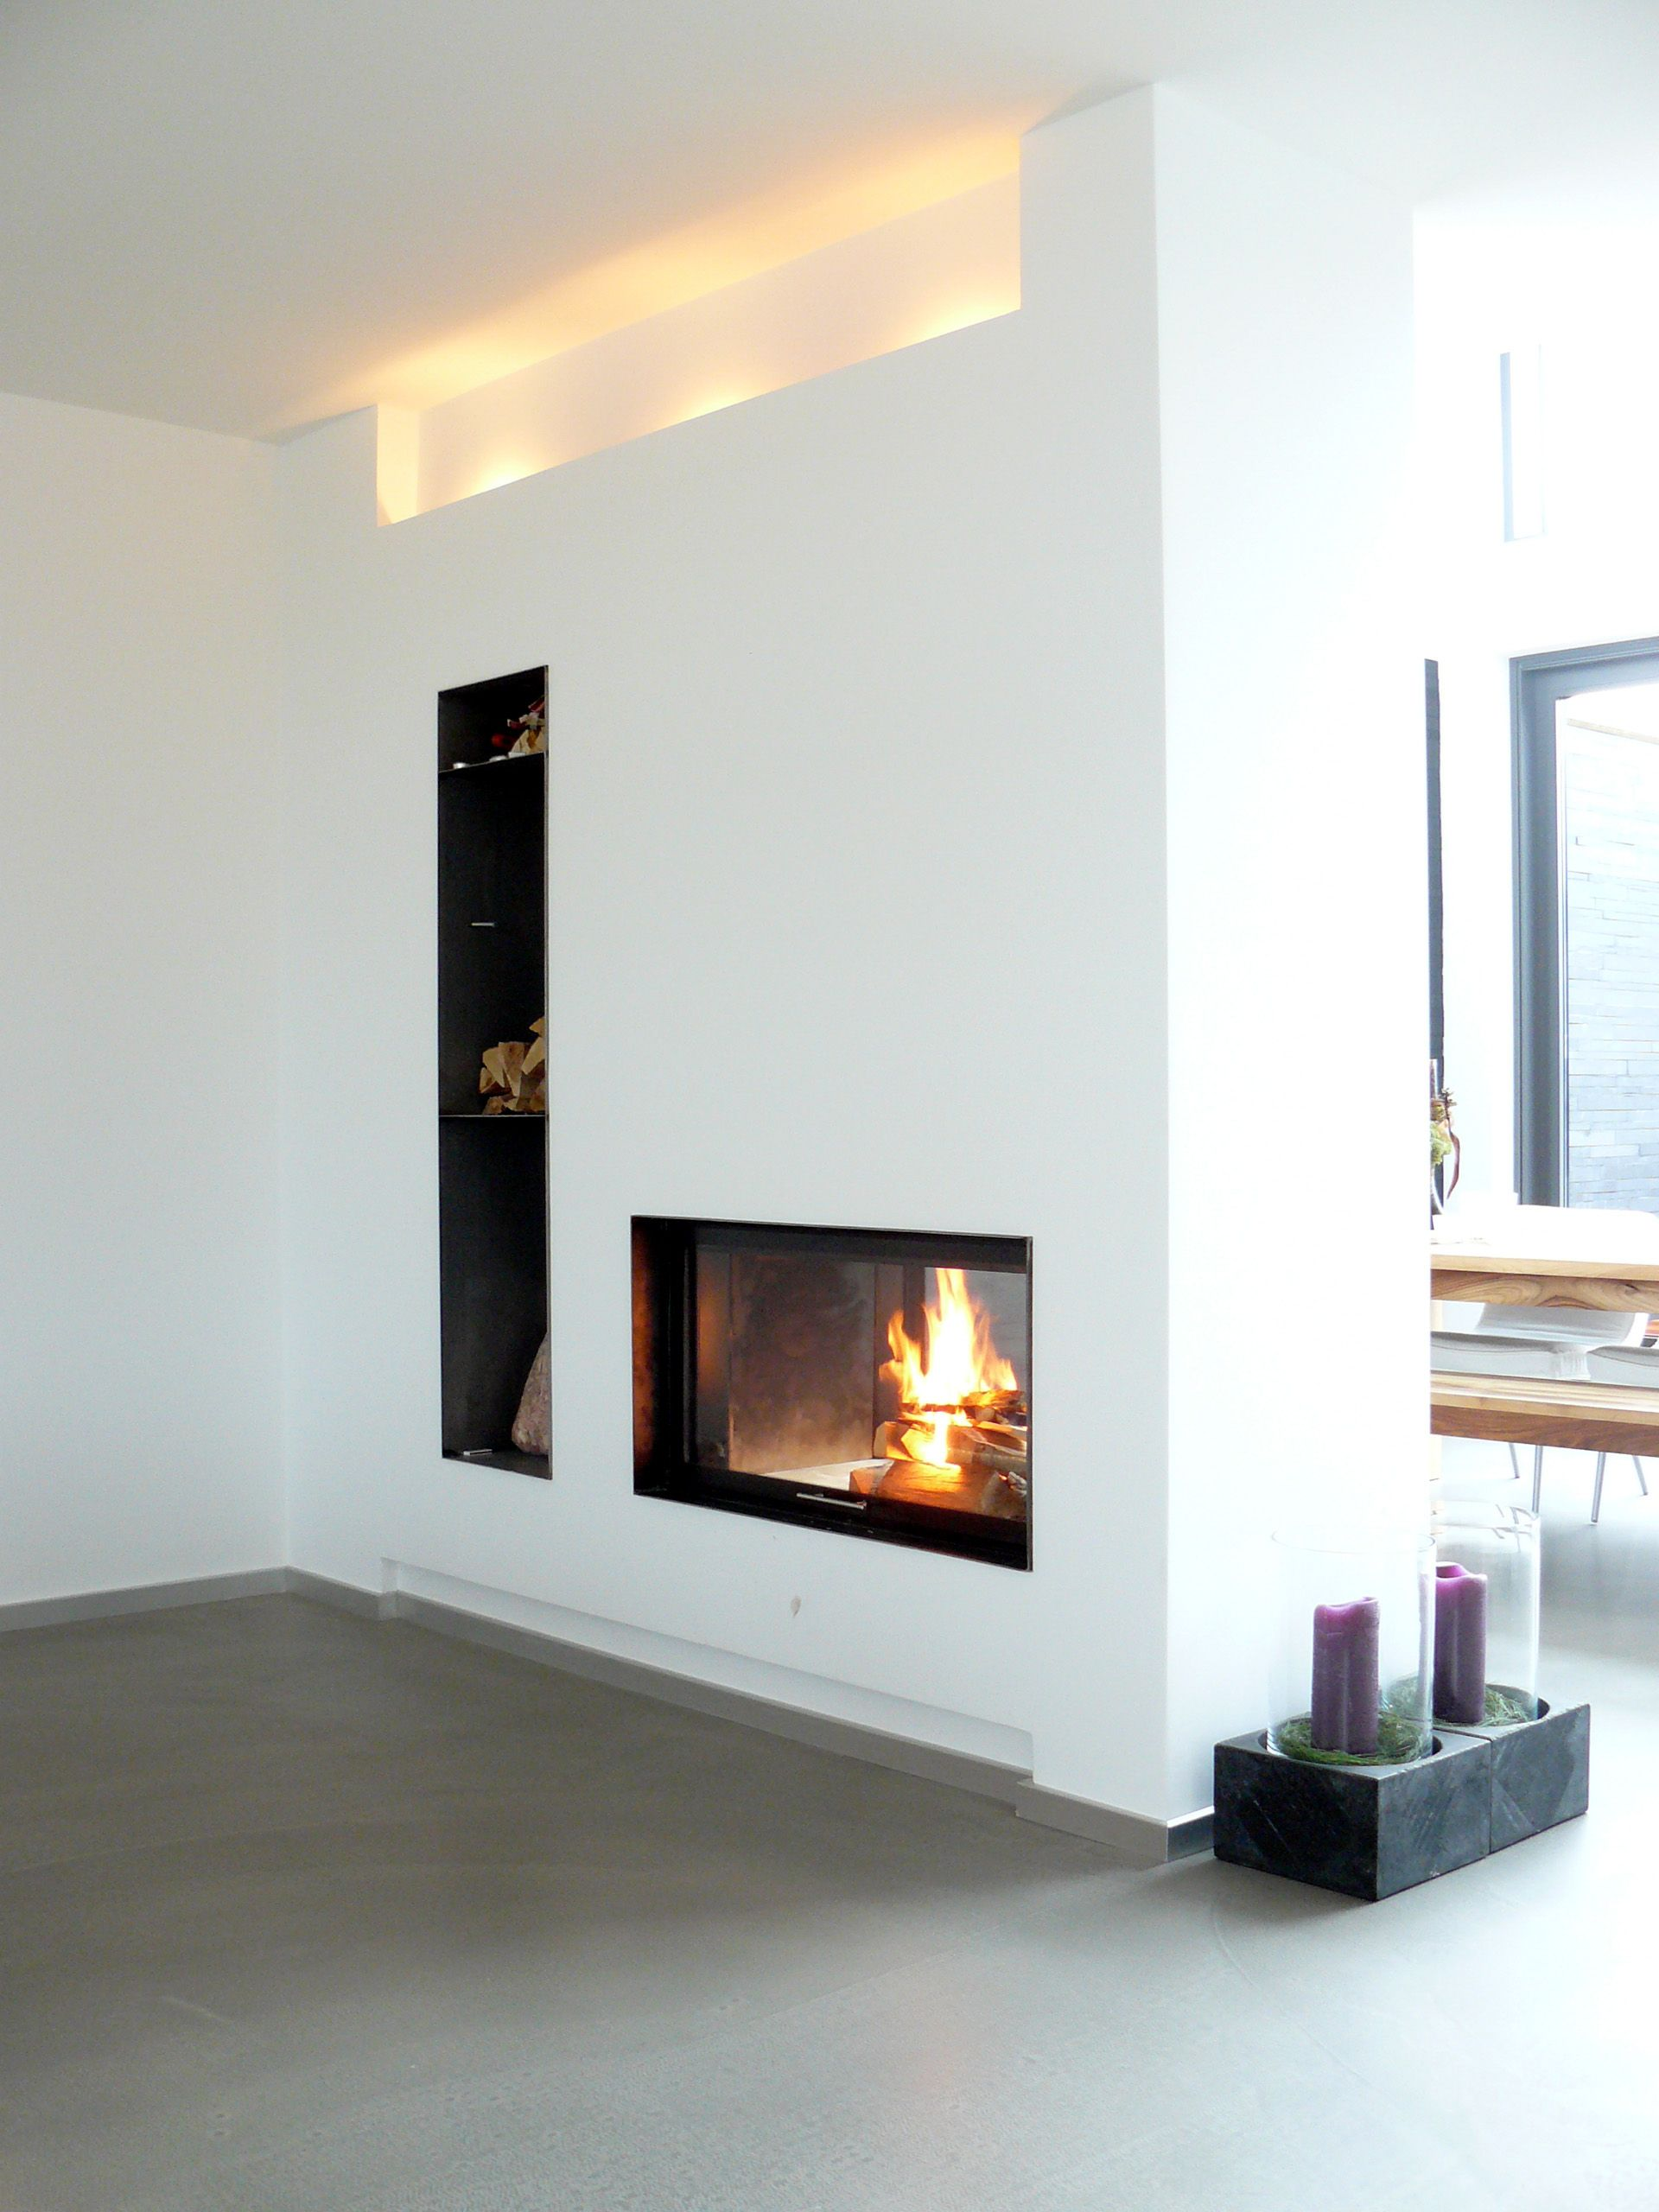 Kamin Modern Design Kamin Mit Tunneleinsatz Fireplace Home Fireplace Modern